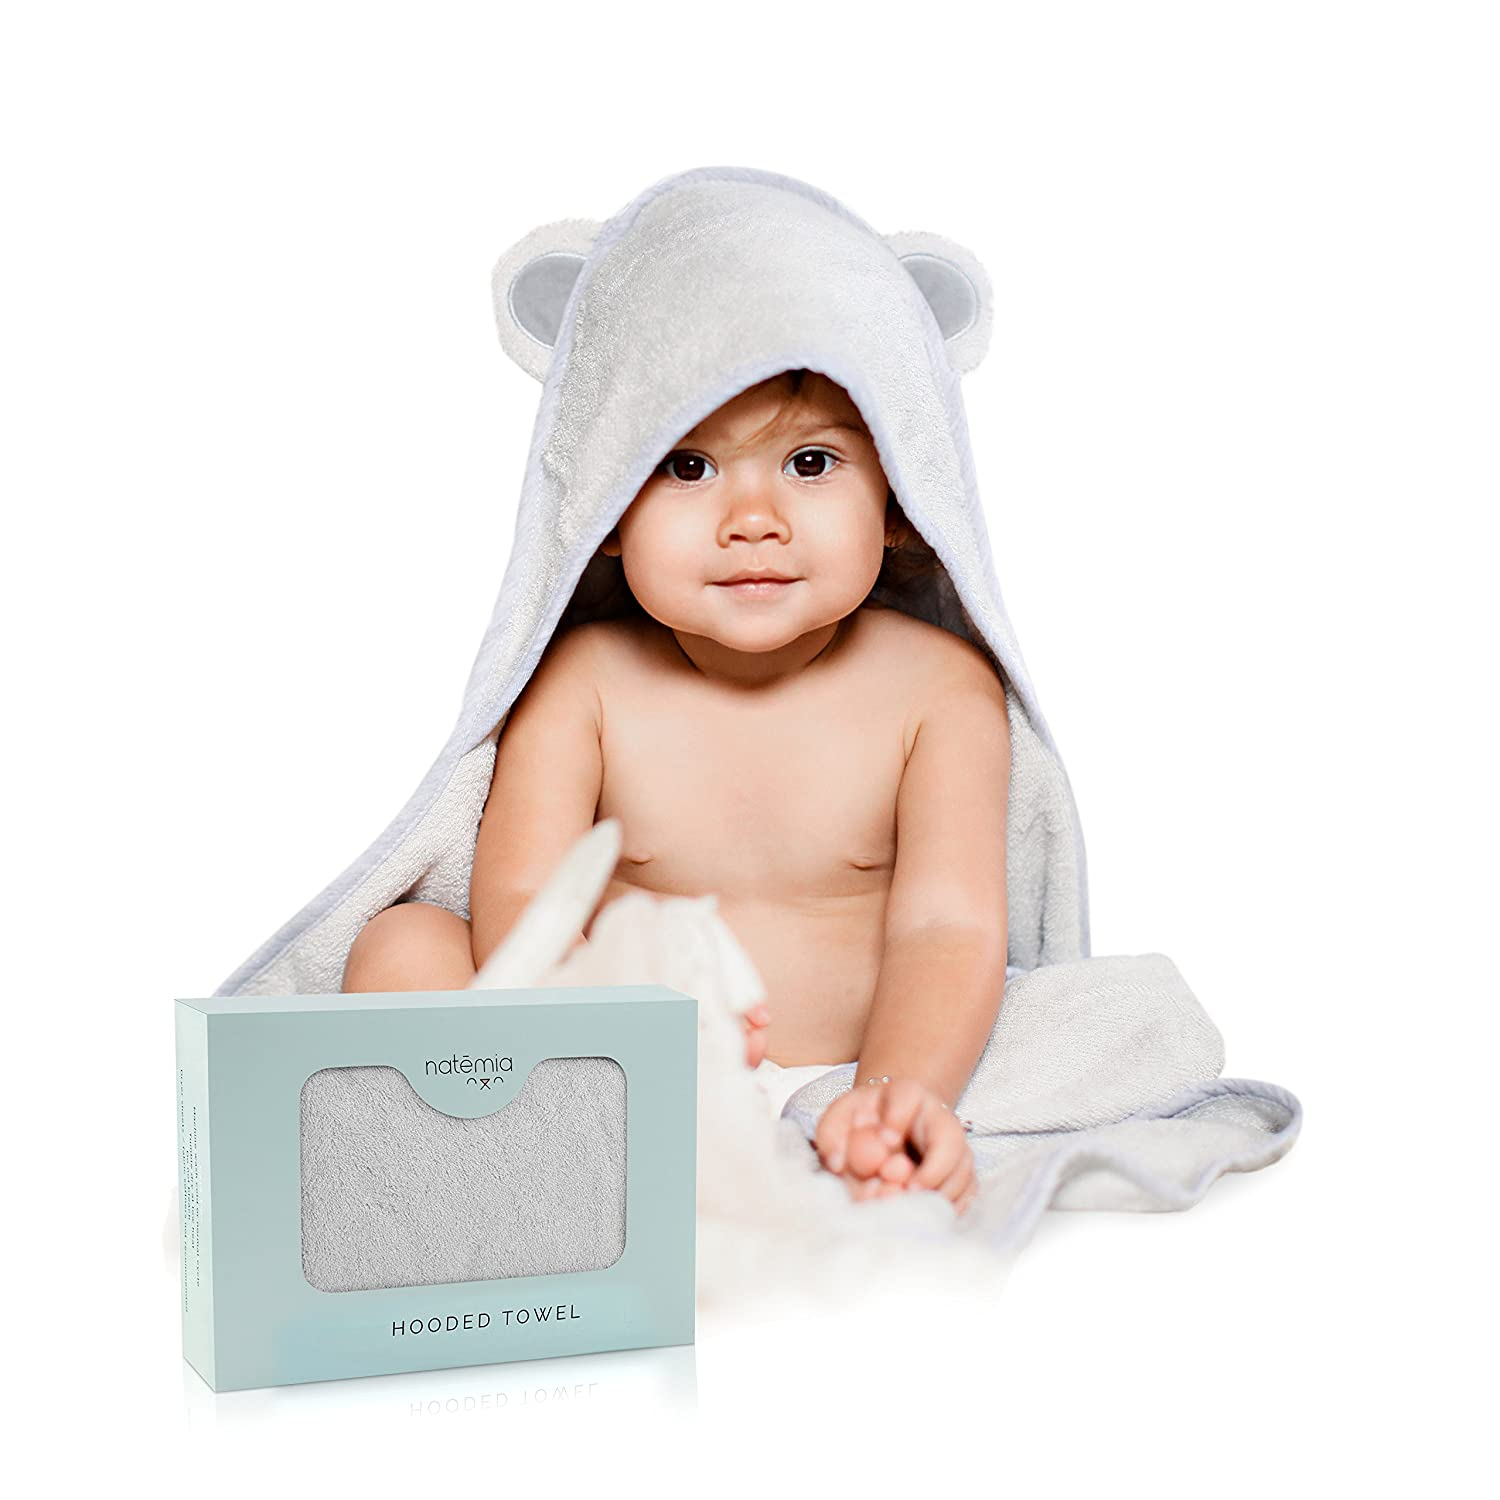 Natemia Rayon from Bamboo Hooded Baby Bath Towel | Highly Absorbent, Plush, Soft, Bacterial & Odor Resistant Towel | for Boys, Girls, Newborns & Infants| Great Baby Shower Gift